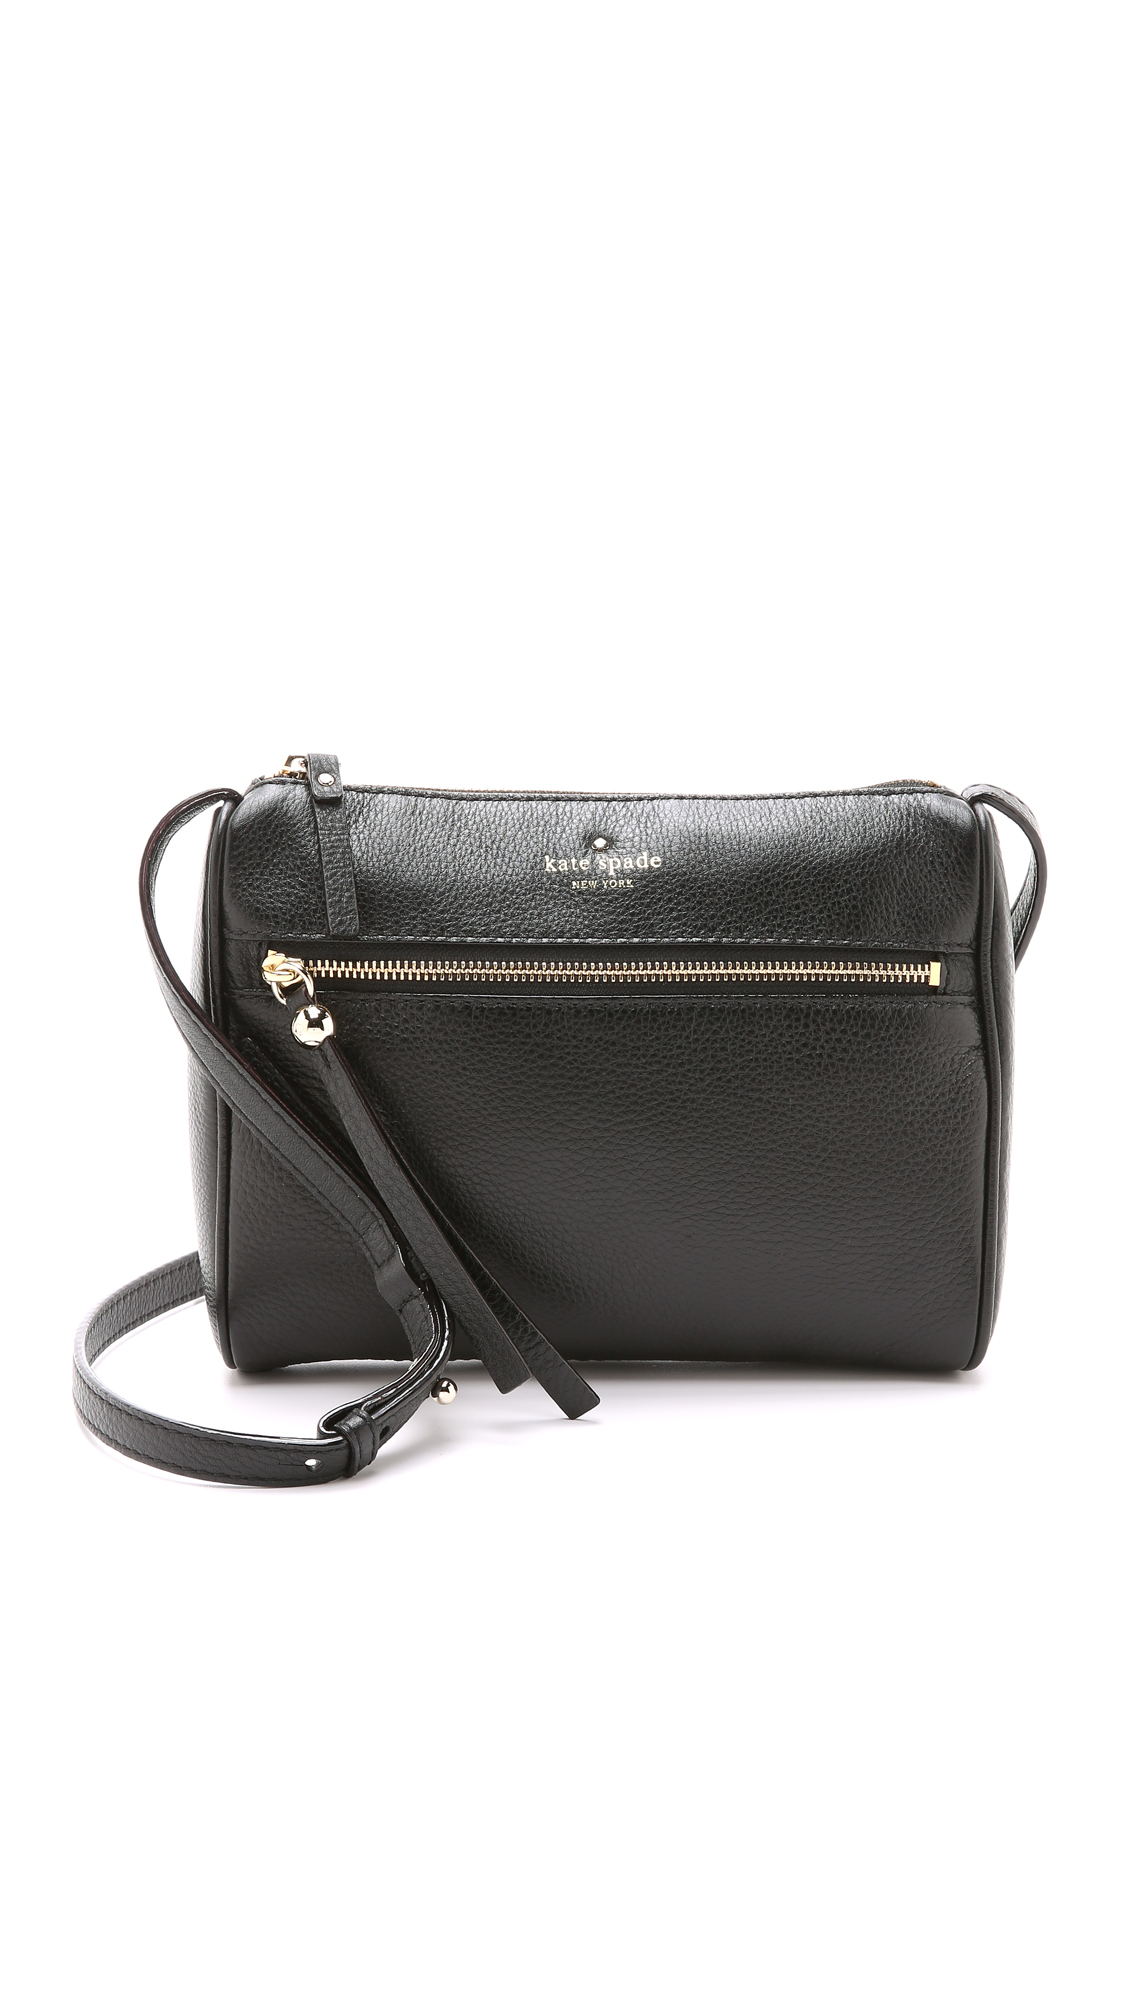 Mini Jackson Street - Cayli Crossbody Bag - Black